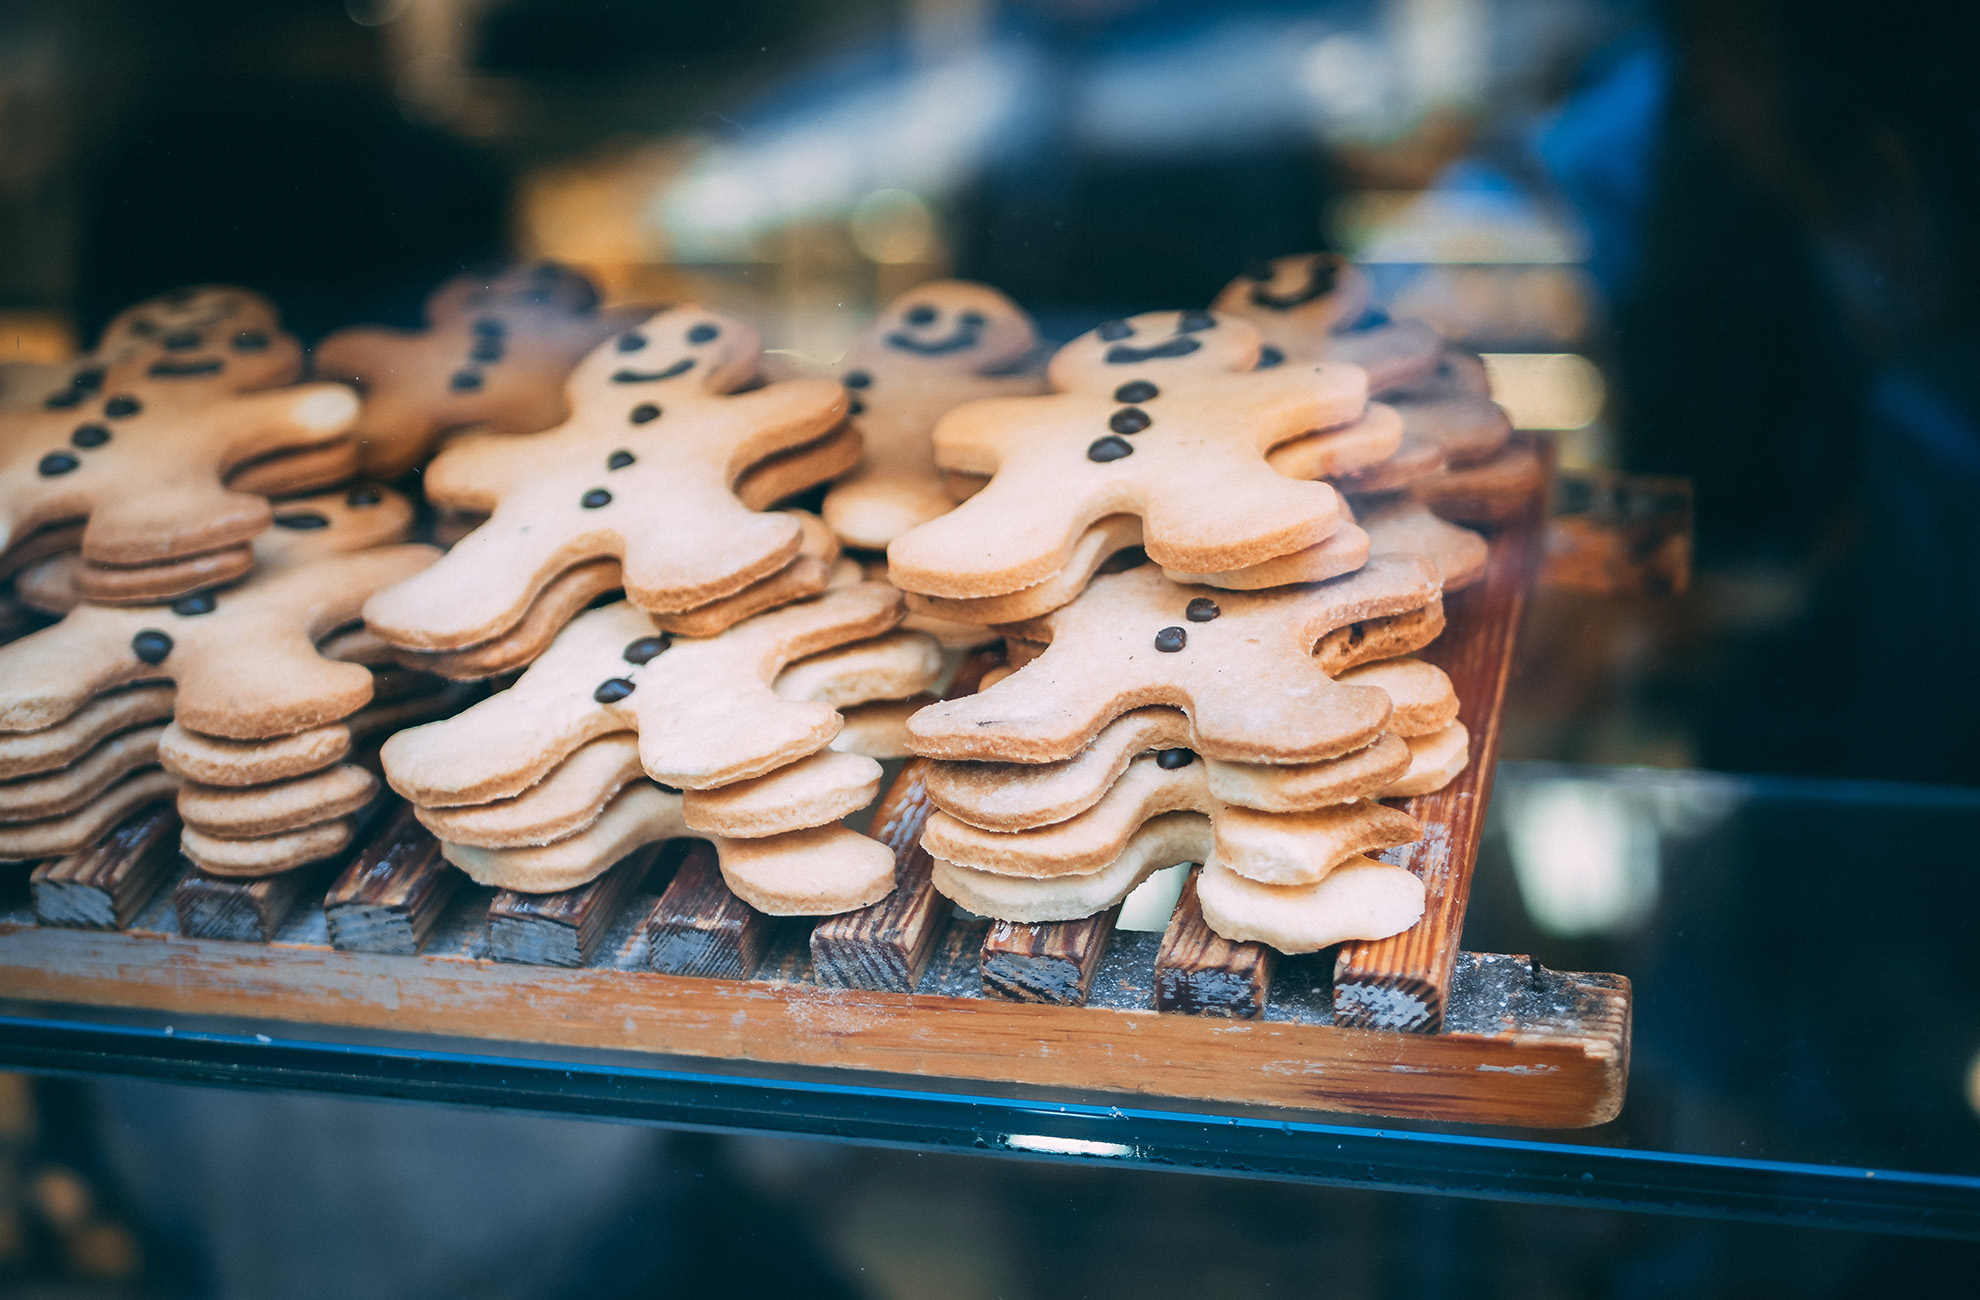 A delicious selection of gingerbread men sit on a tray